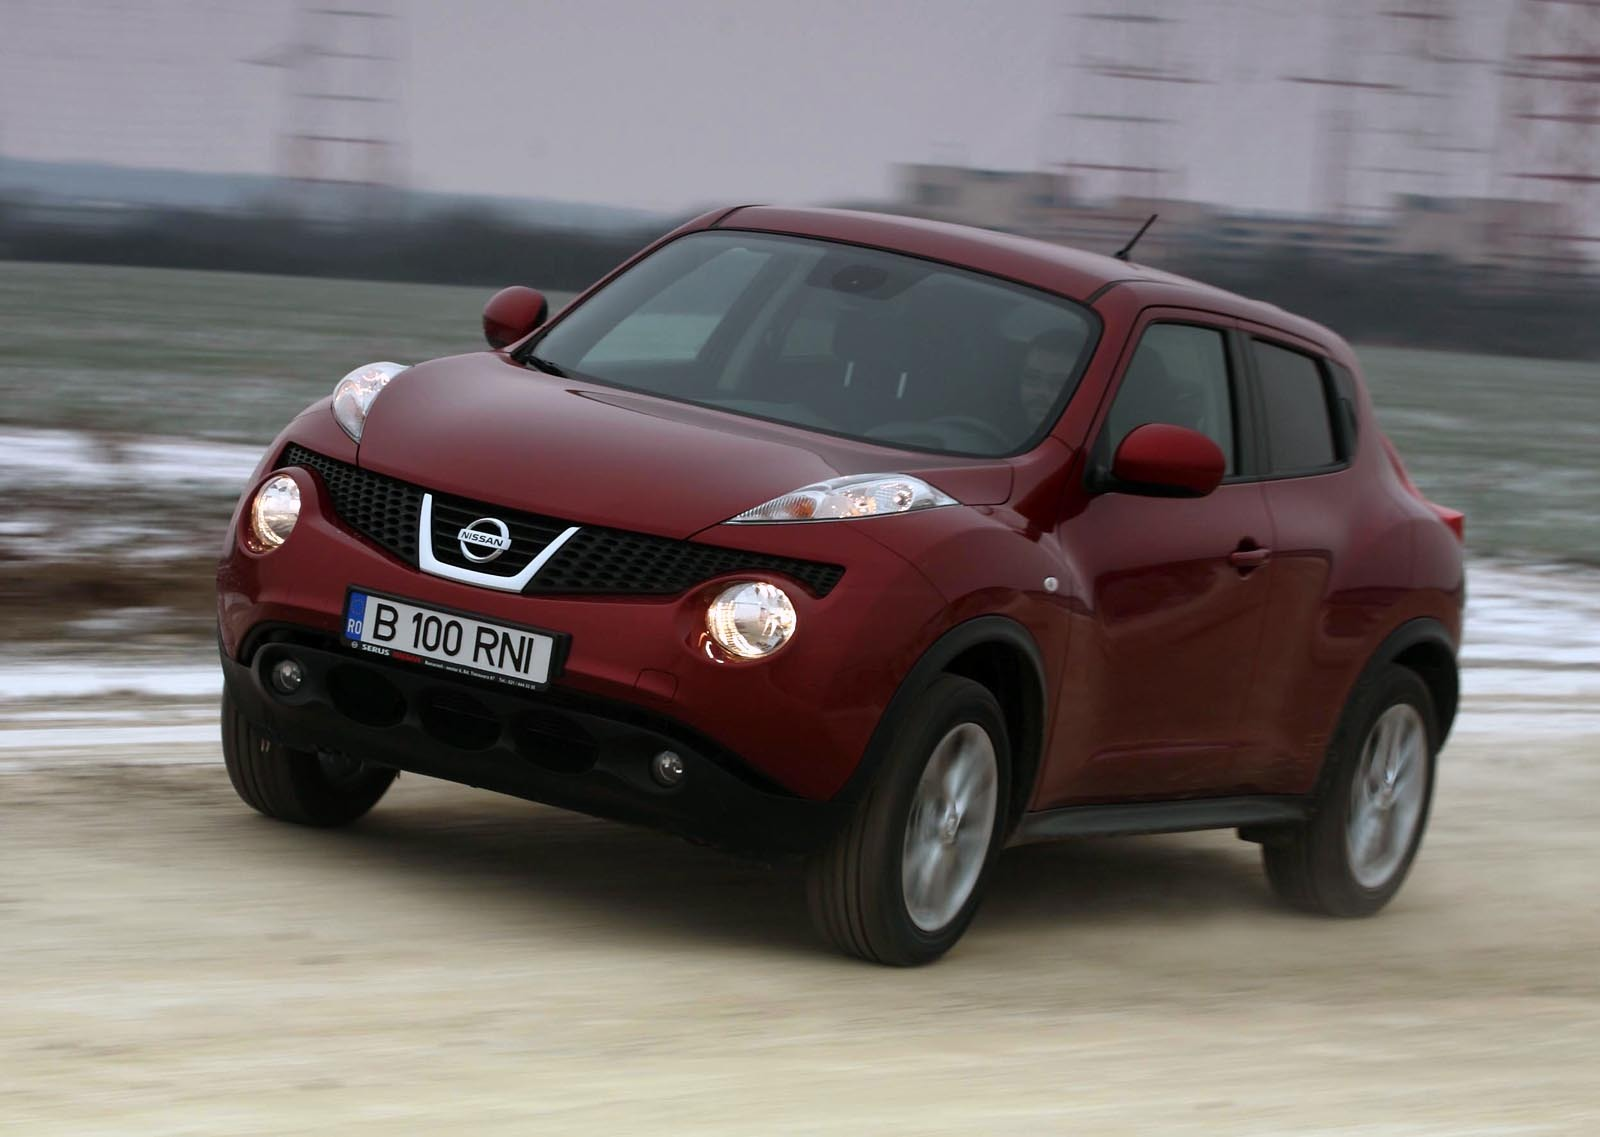 imagini scurt test drive cu nissan juke 1 6 2wd. Black Bedroom Furniture Sets. Home Design Ideas